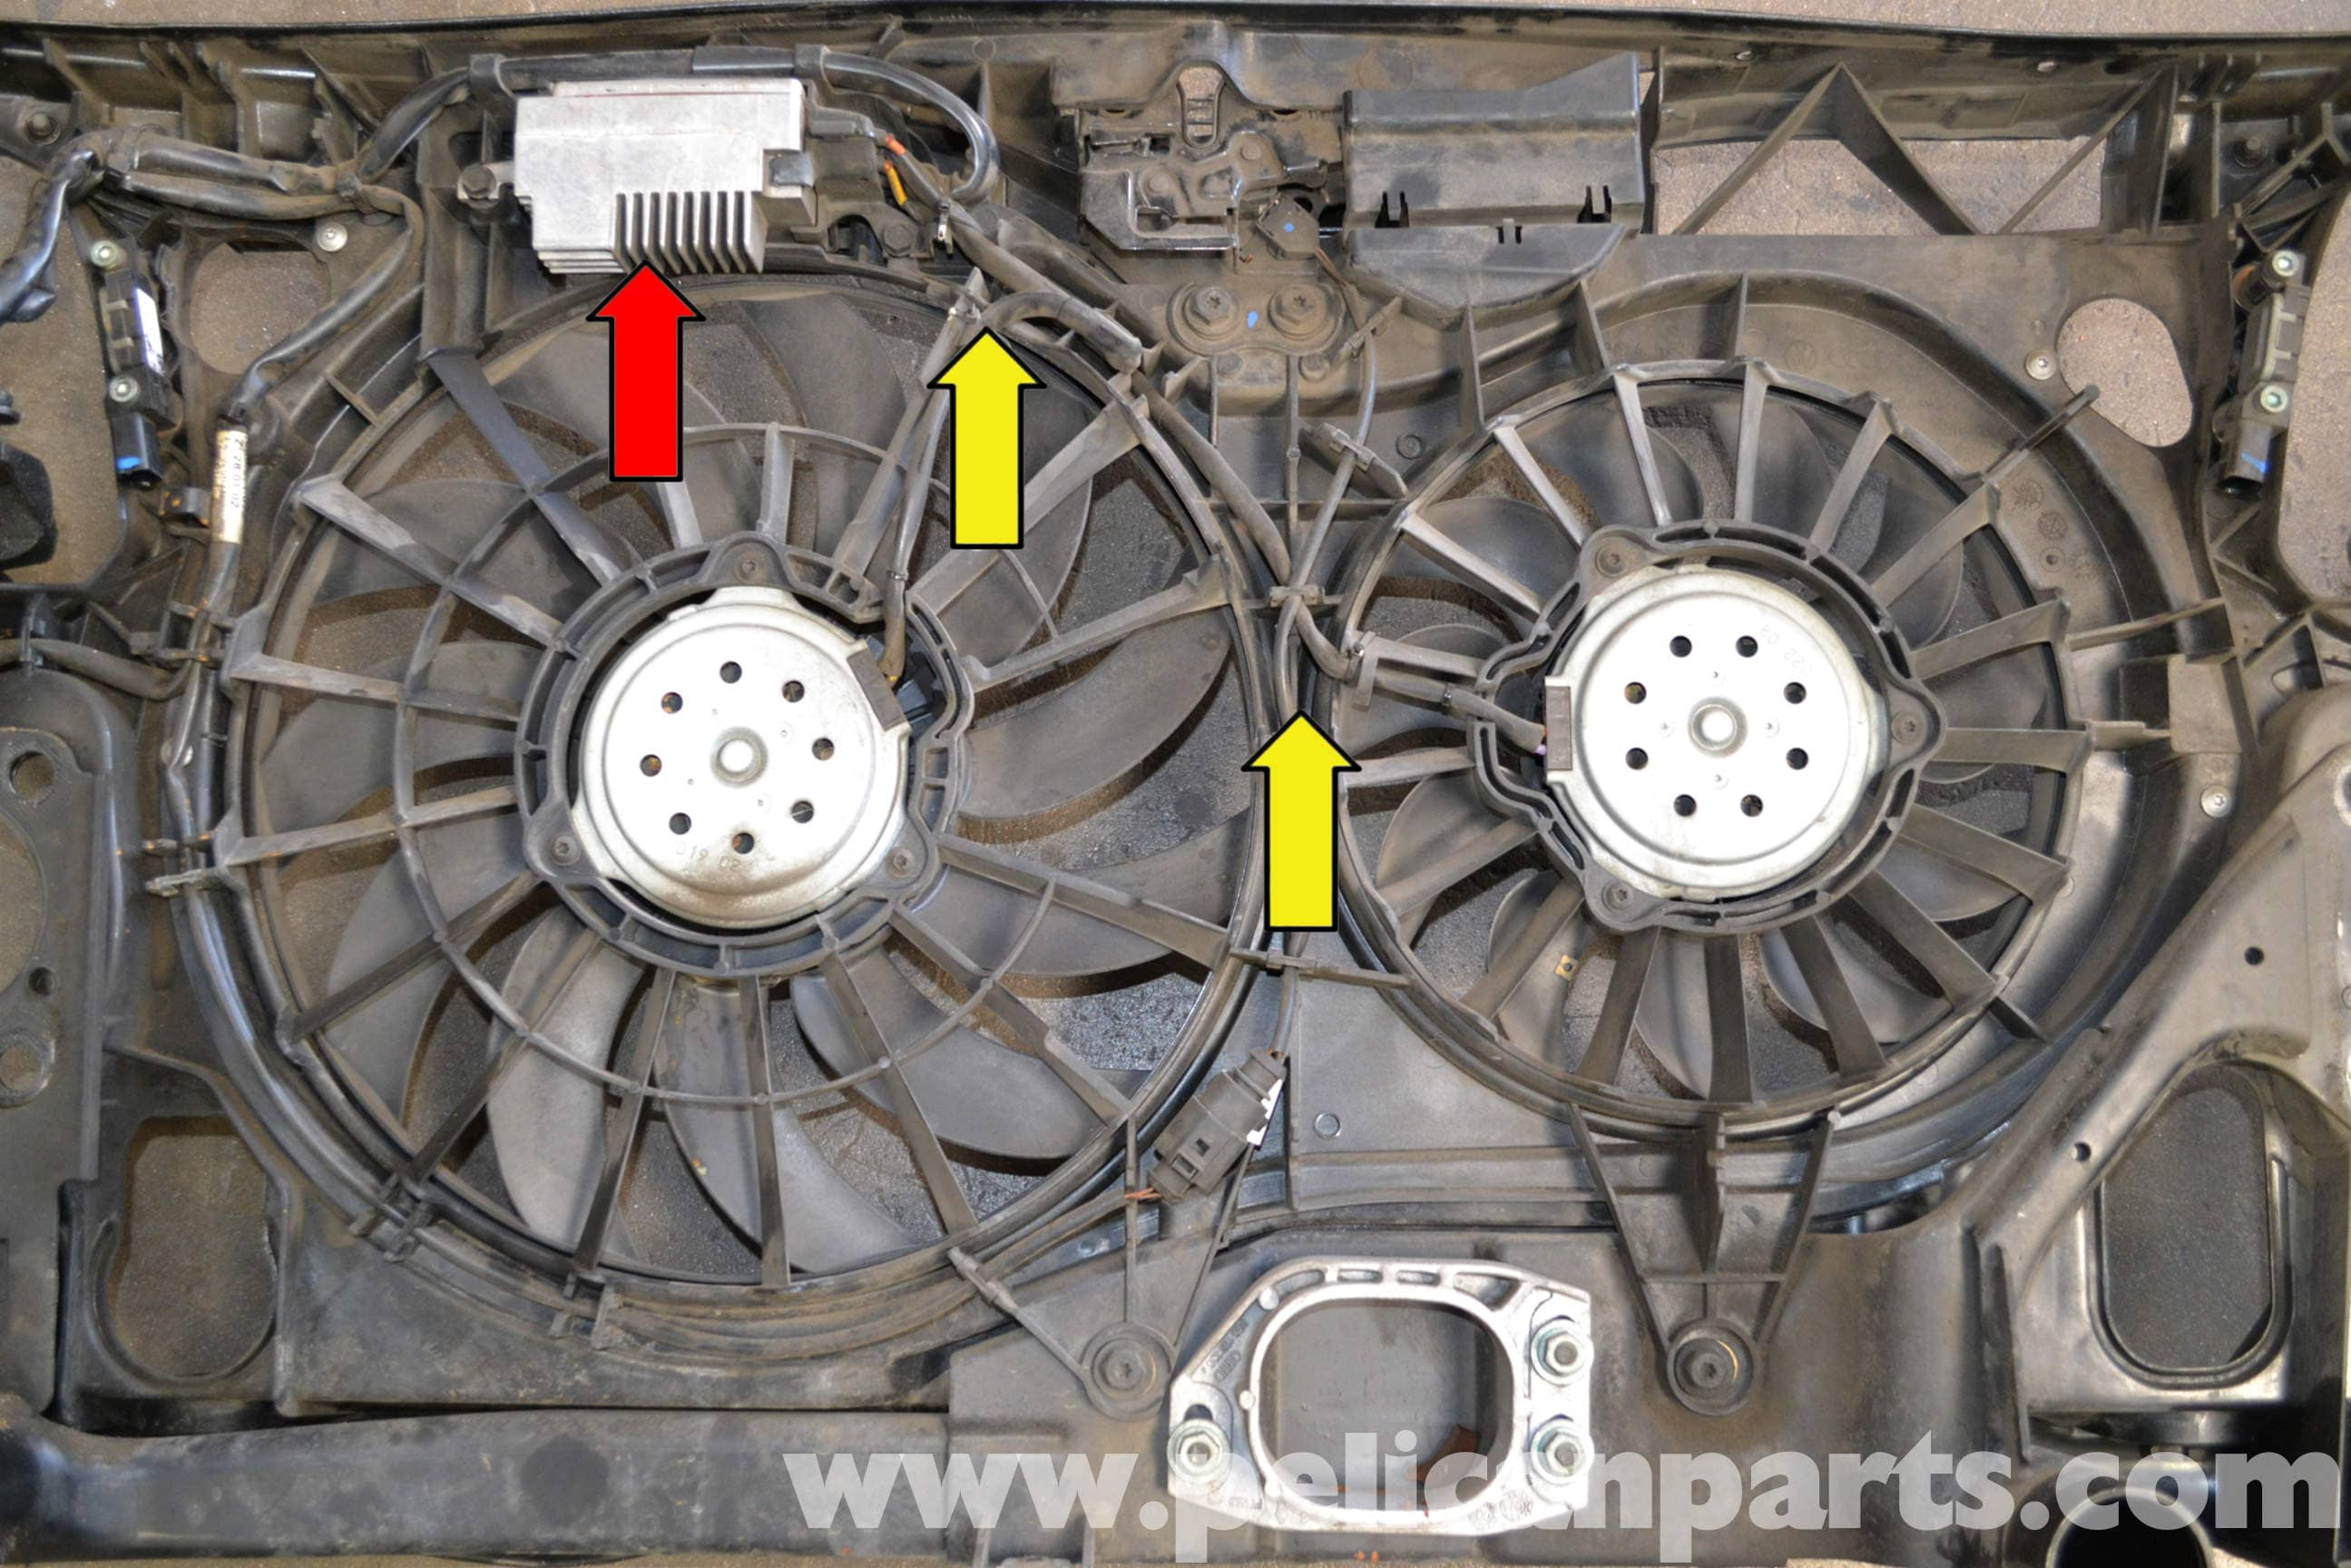 audi a4 b6 fan and shroud replacement 2002 2008 pelican parts rh pelicanparts com 1999 Audi A4 Oil Type 1999 Audi A4 1.8 Turbo